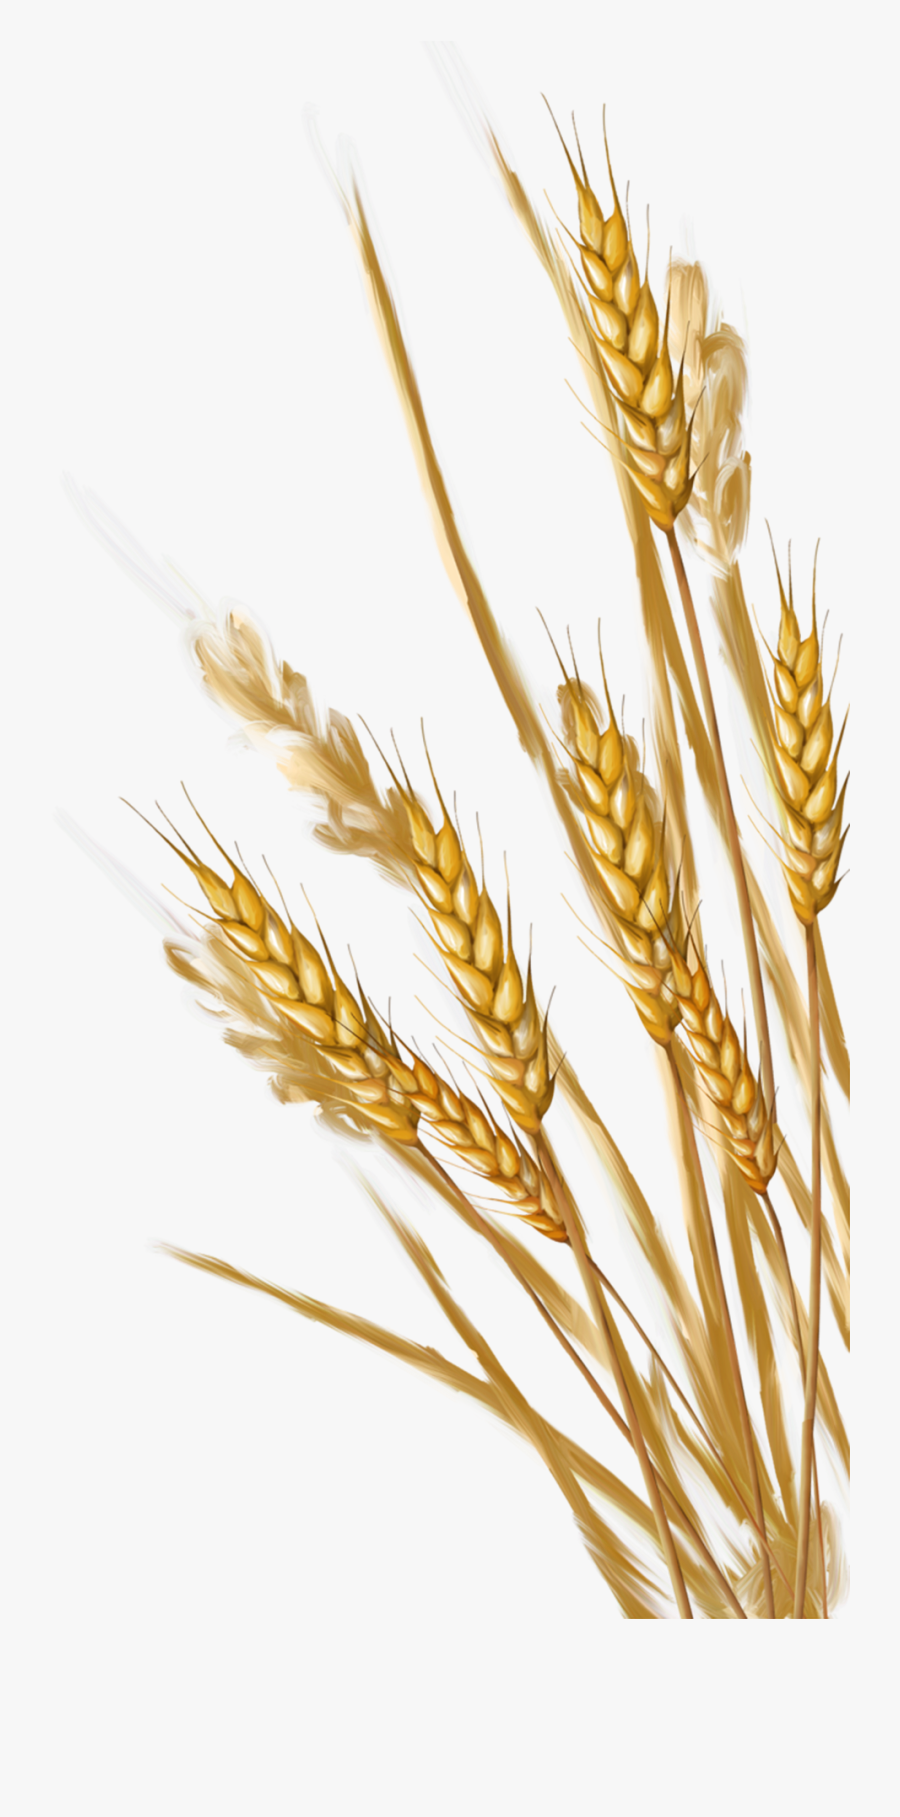 Field clipart wheat, Field wheat Transparent FREE for download on  WebStockReview 2020